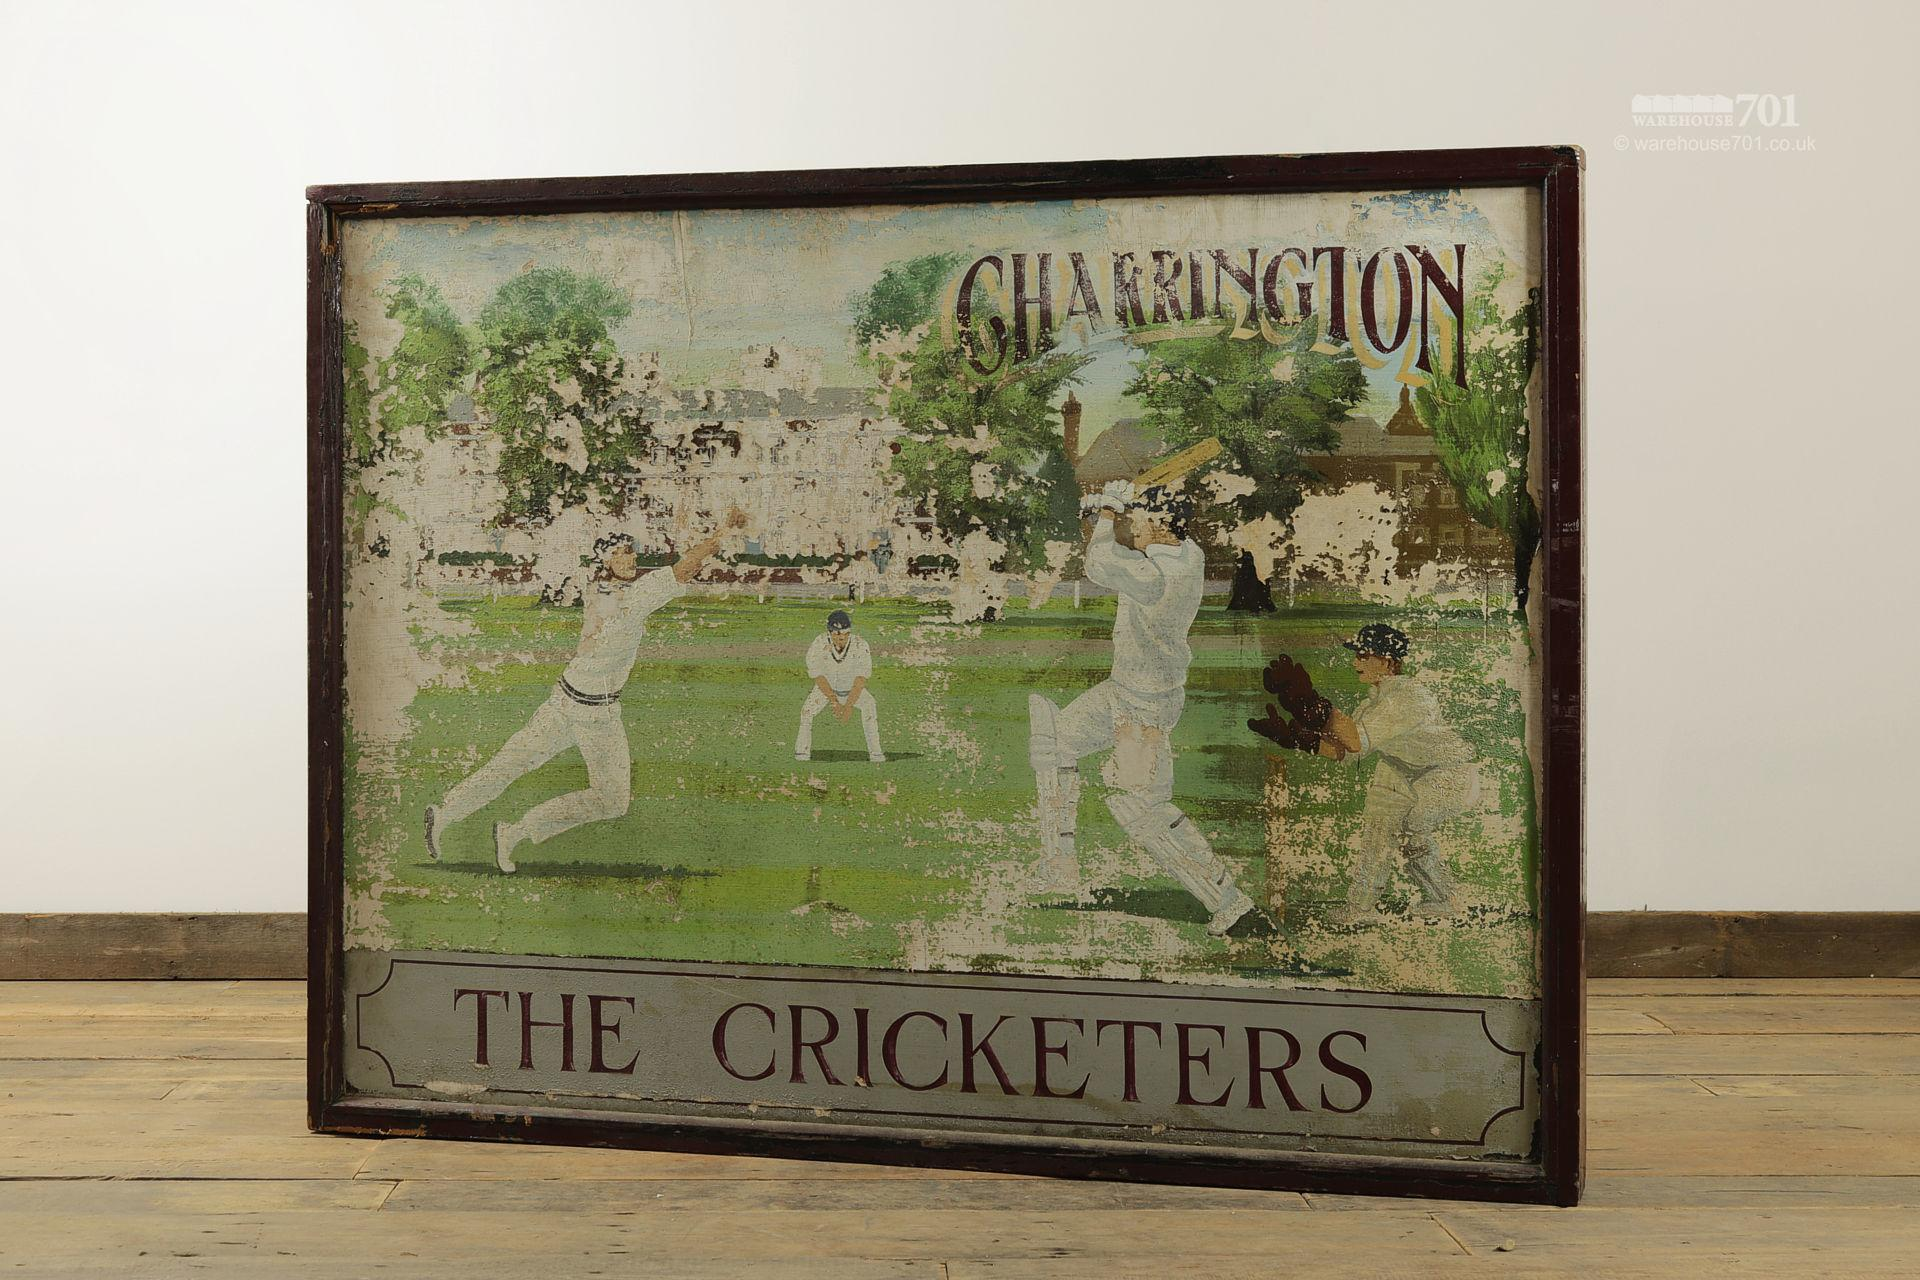 Salvaged Cricketers Double Sided Pub Sign #6